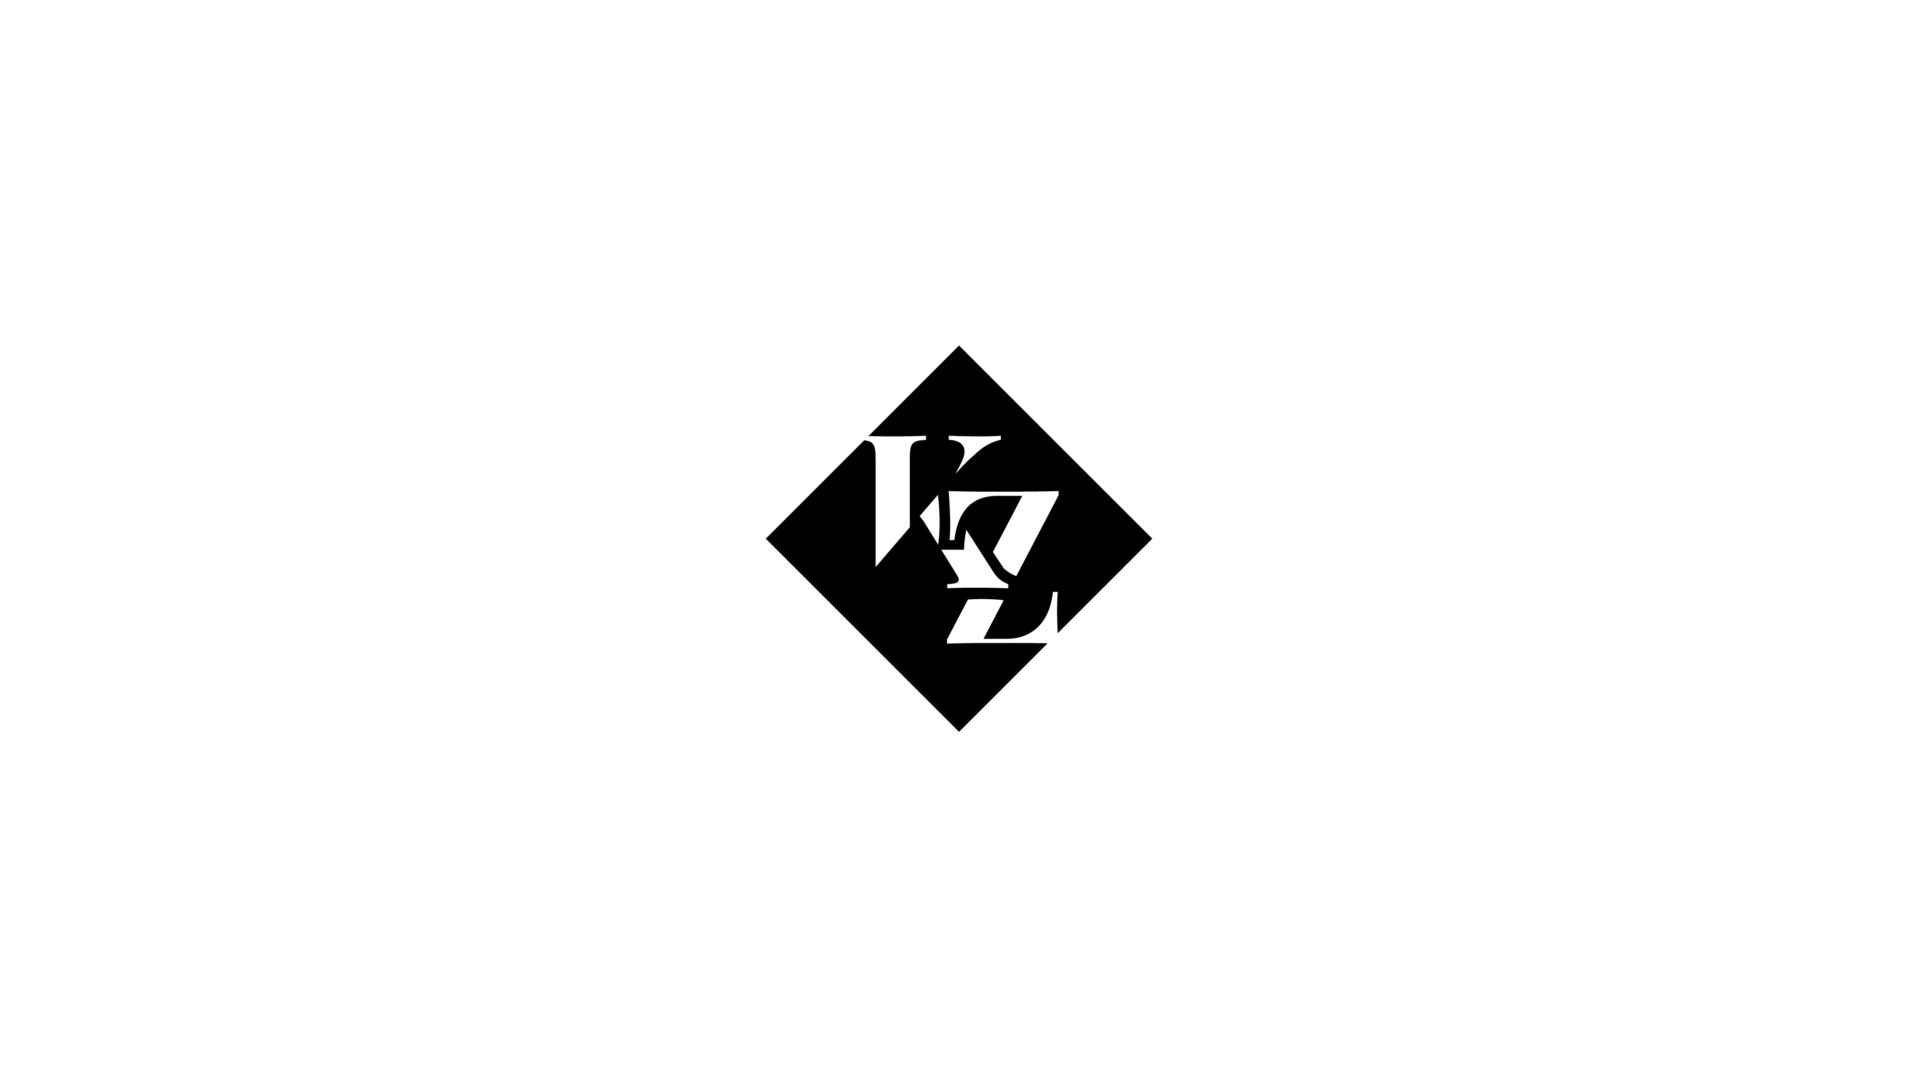 black and white Kat Z logo